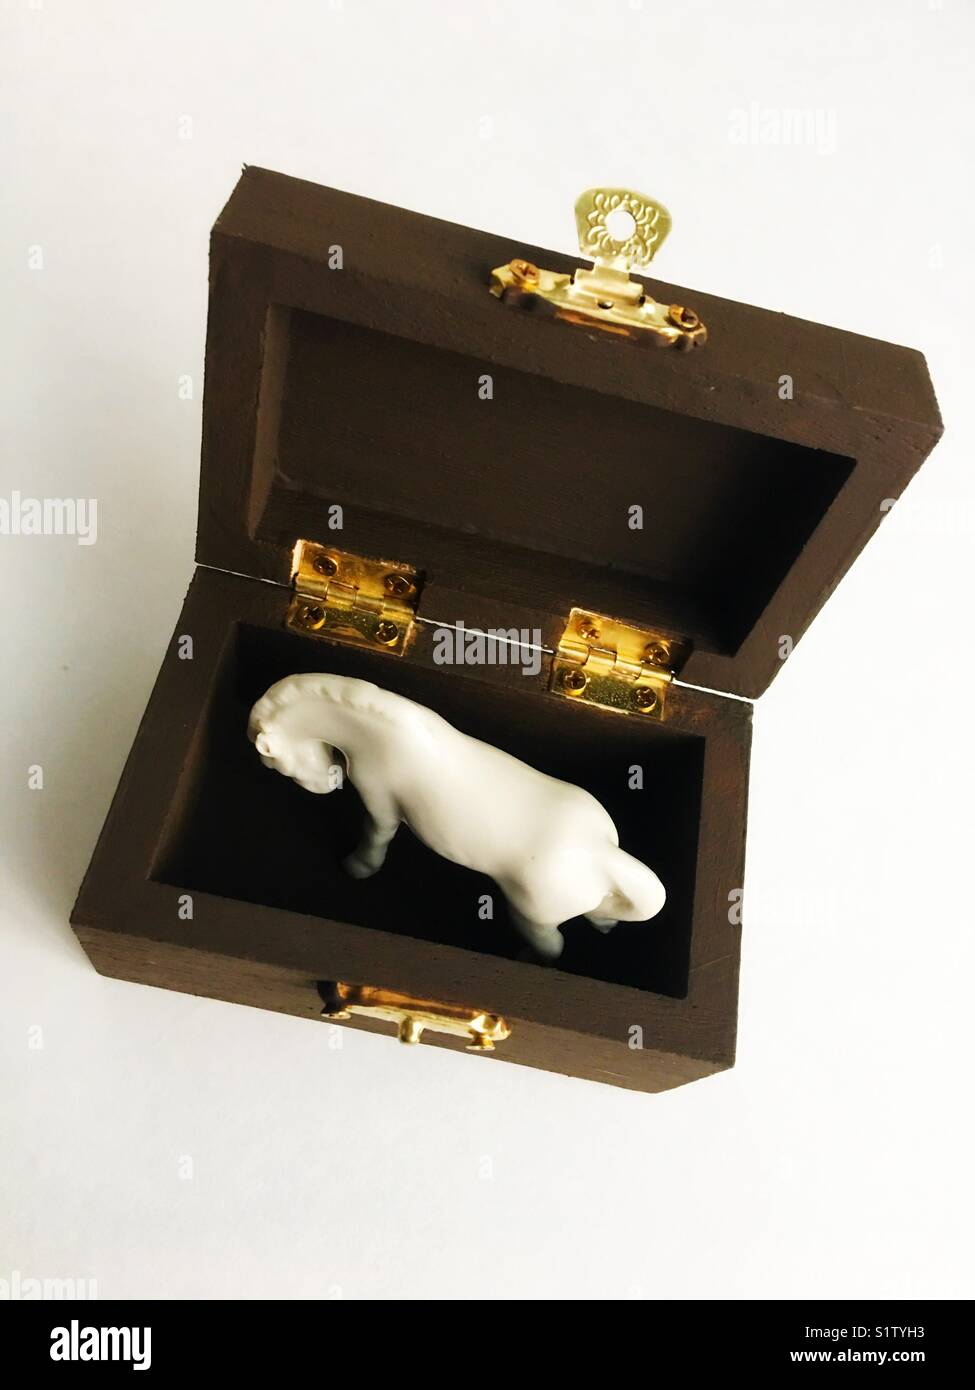 A ceramic white horse in a box. - Stock Image